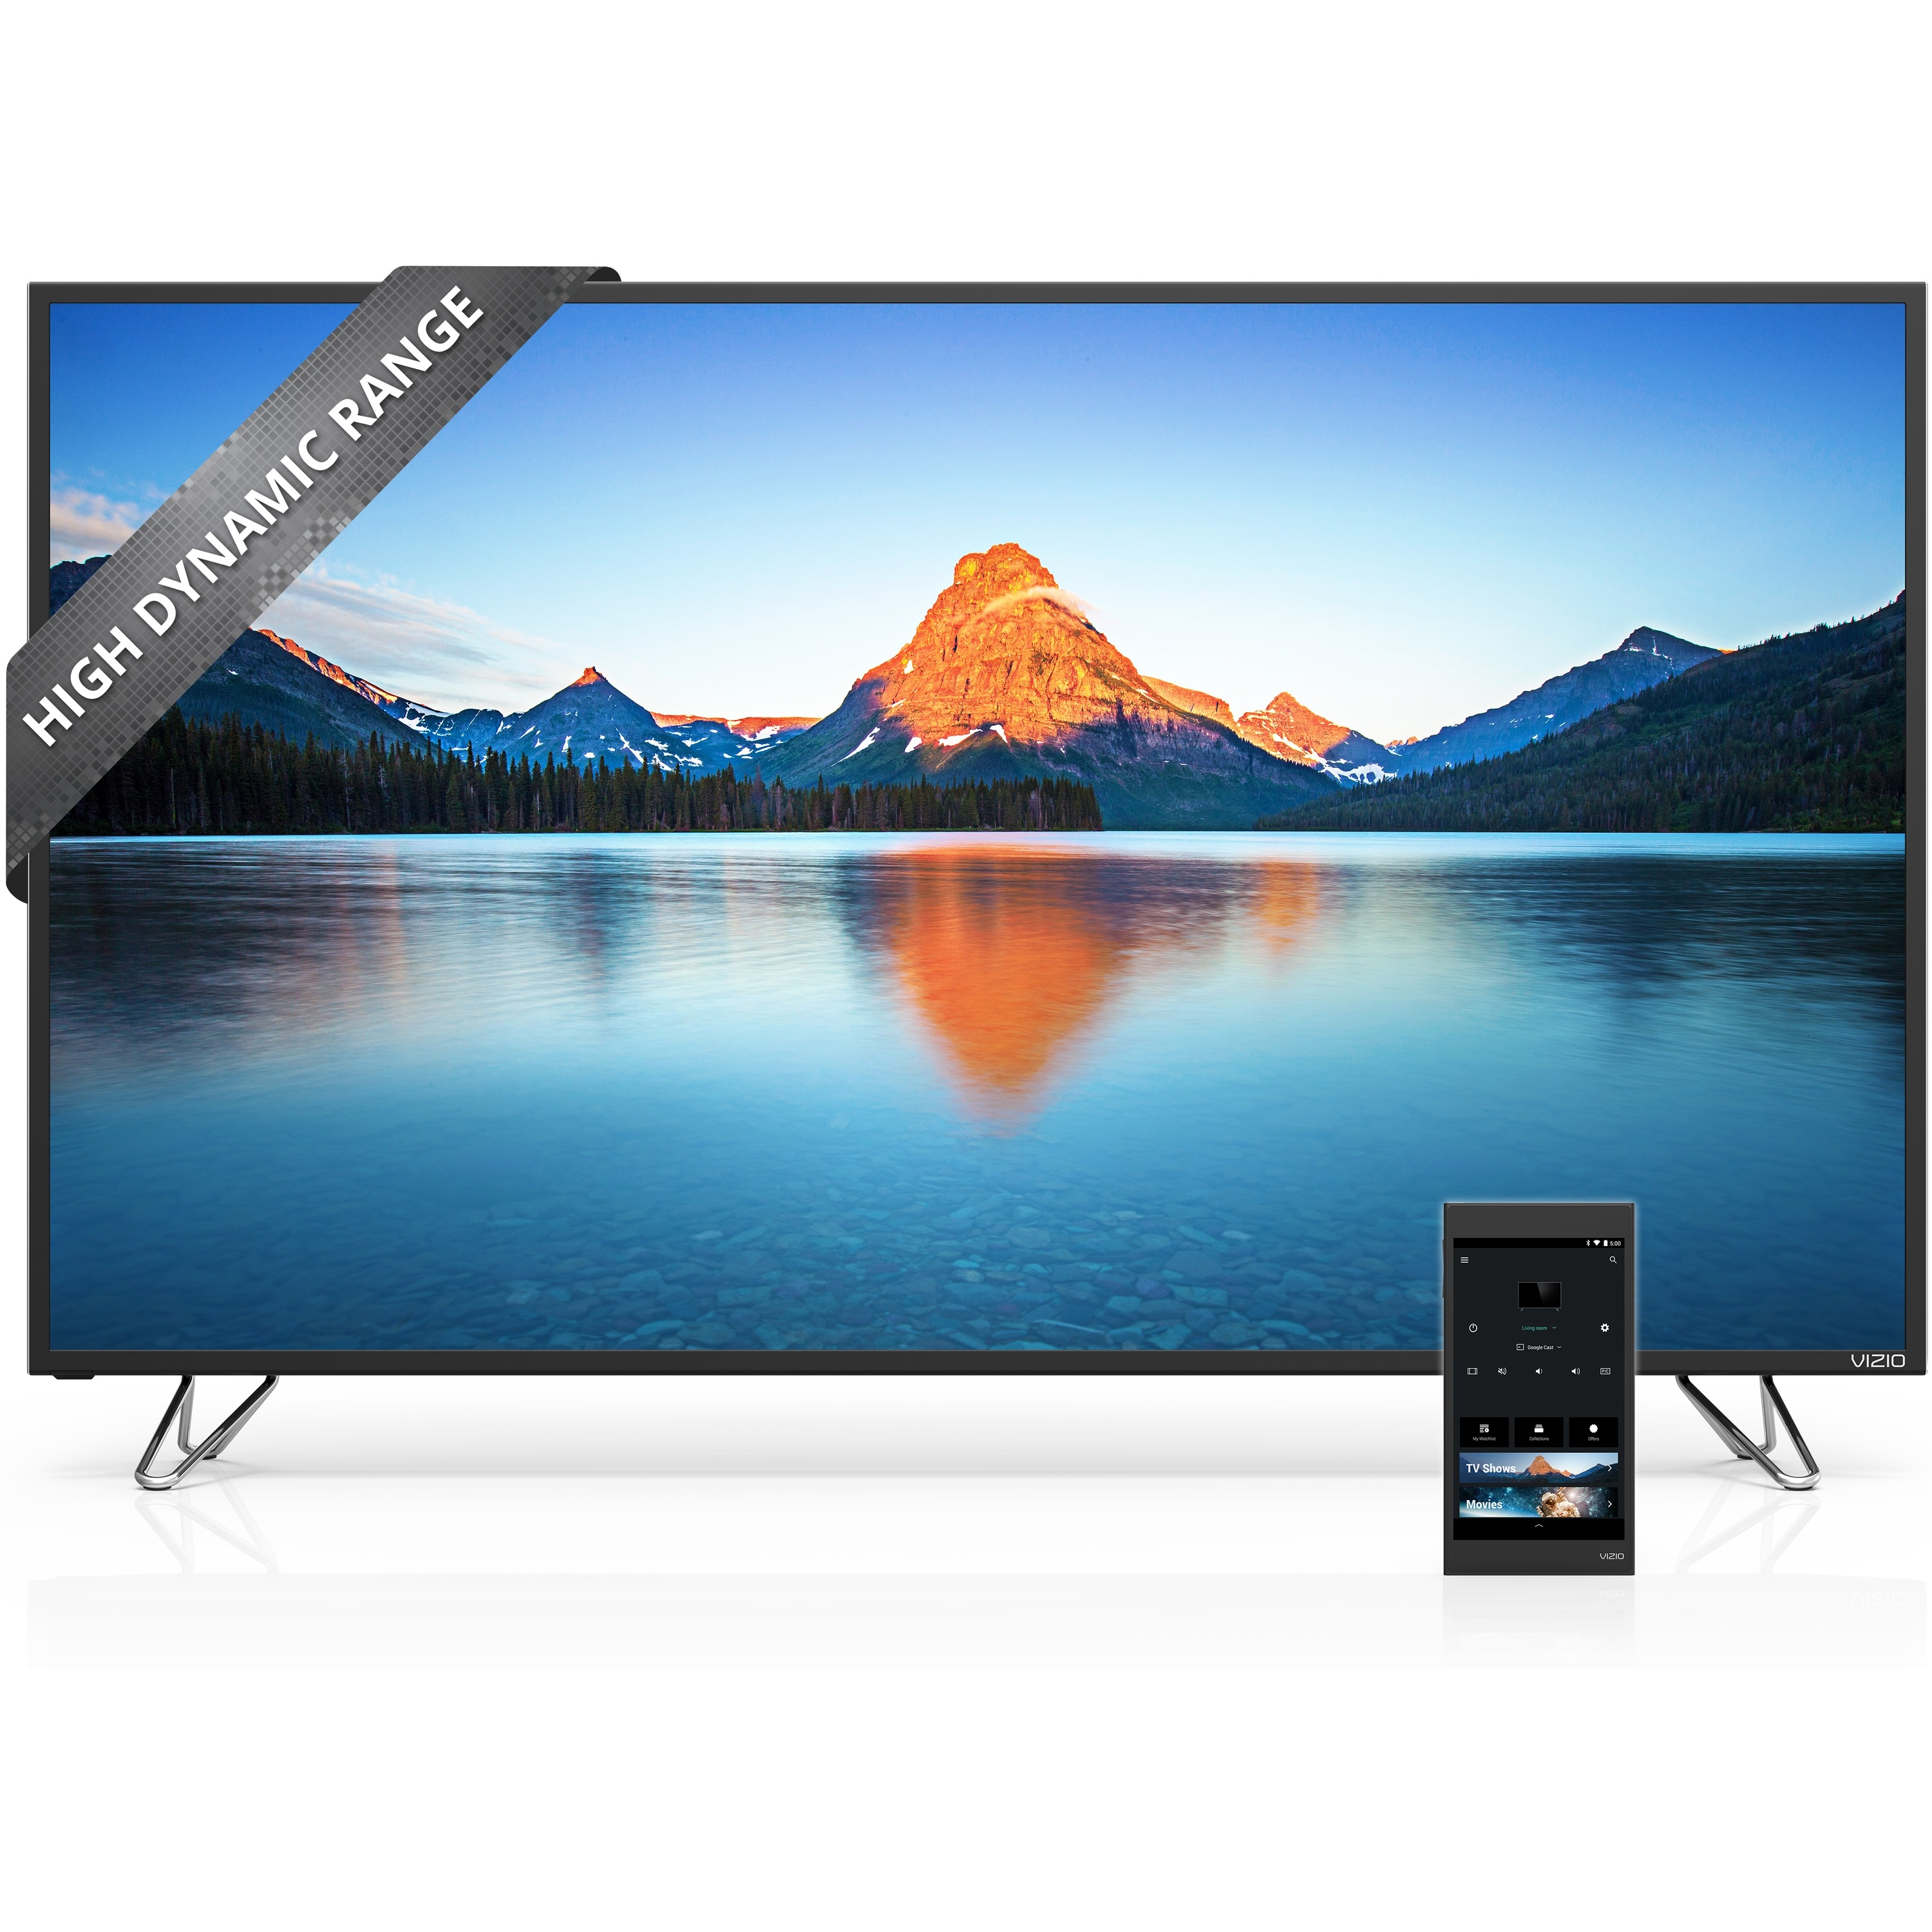 VIZIO M65-D0 65-inch 4K Ultra HD LED Smart TV - 3840 x 2160